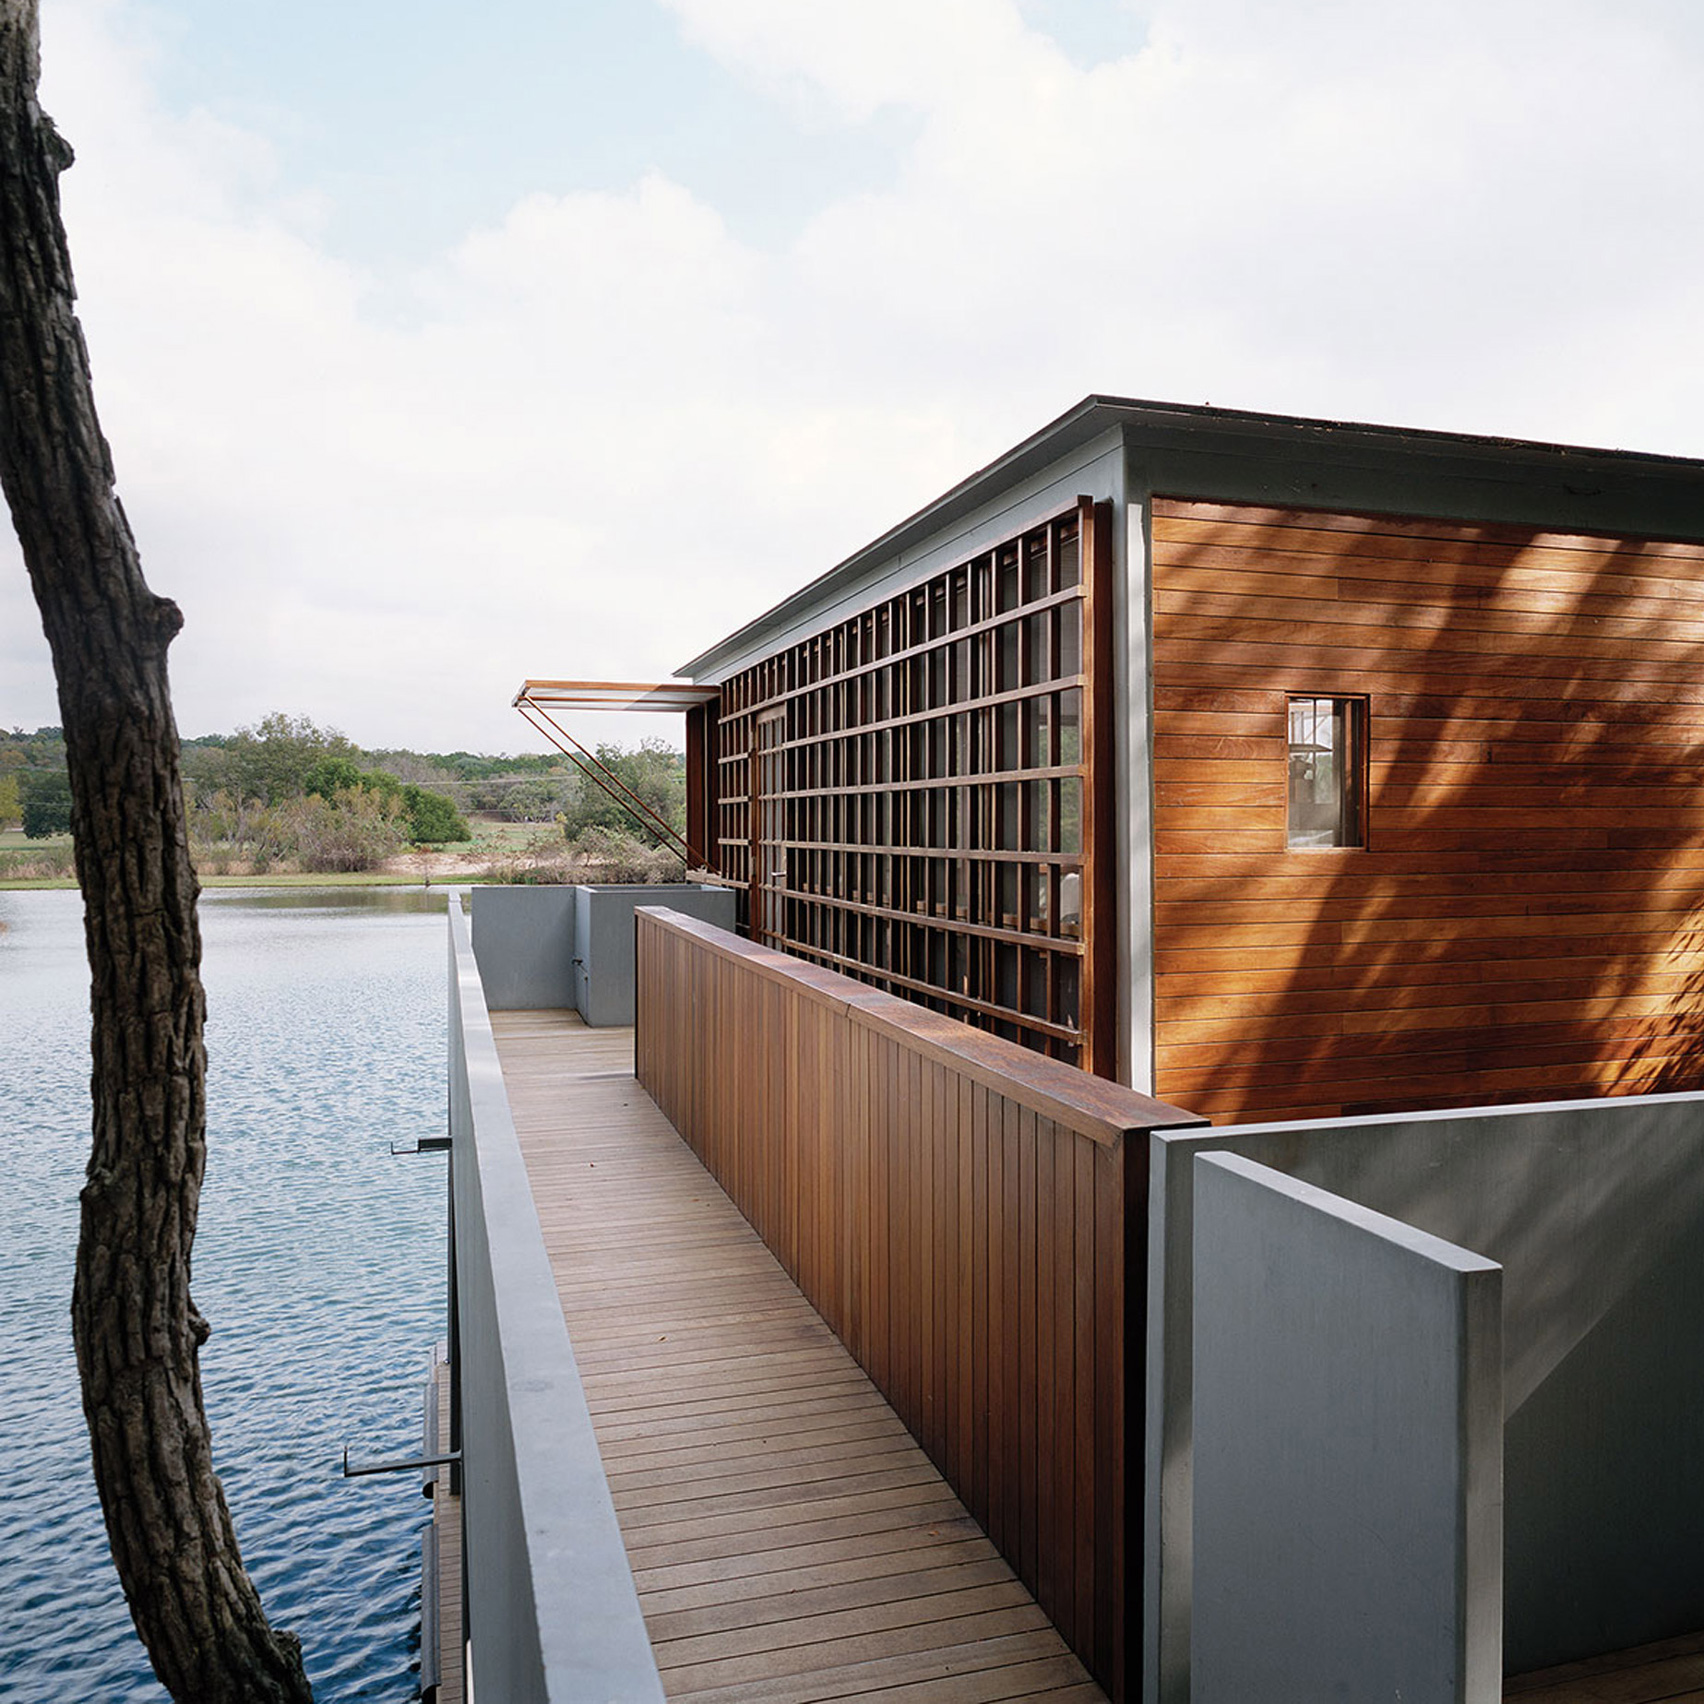 Off Grid Boathouse By Andersson Wise Sits On Lake Austin - Tower-house-in-texas-by-andersson-wise-architects